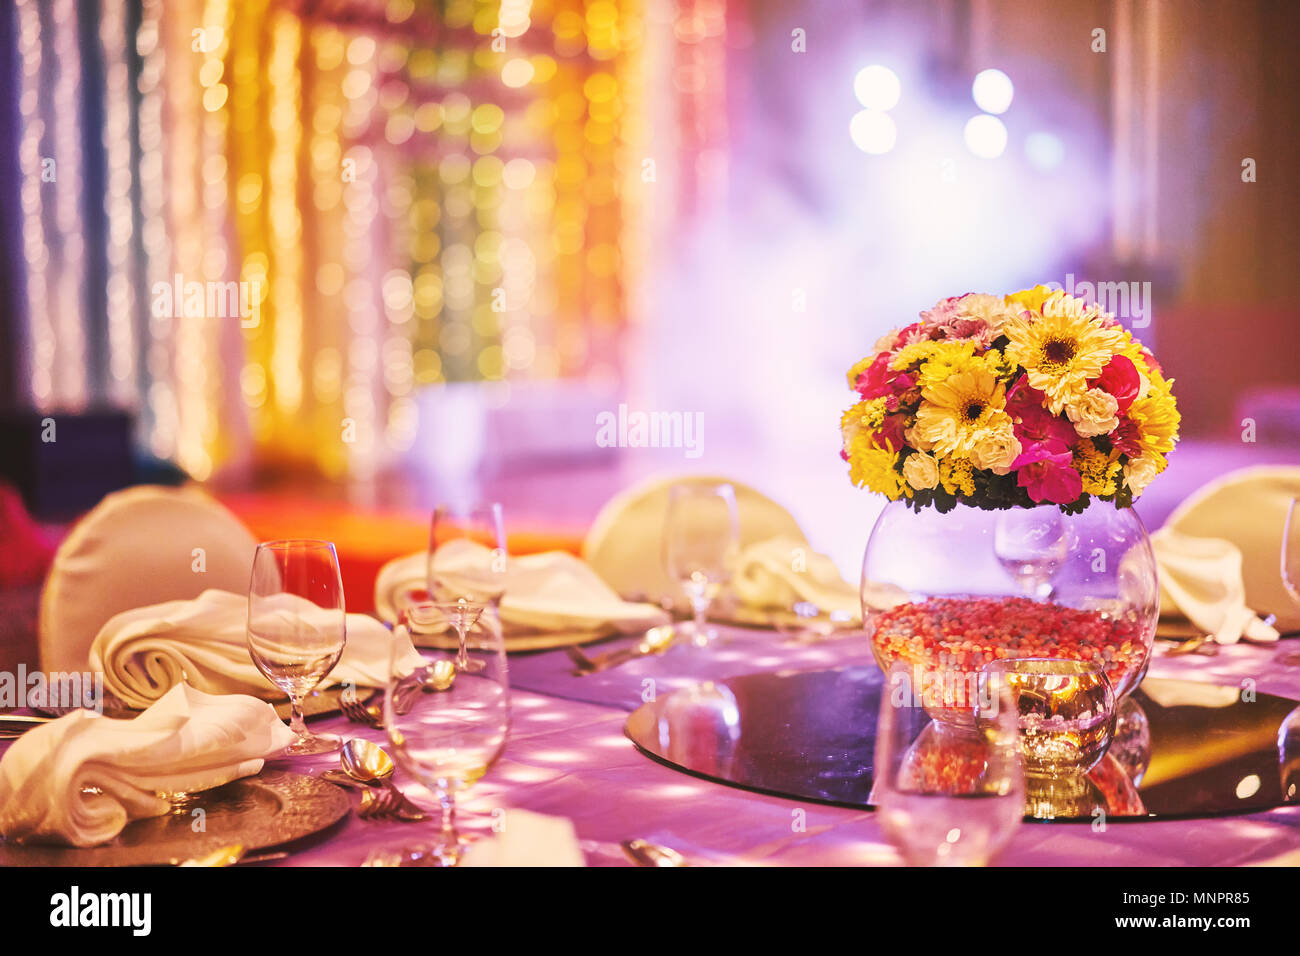 Table Decoration In An Indian Wedding Stock Photos & Table ...